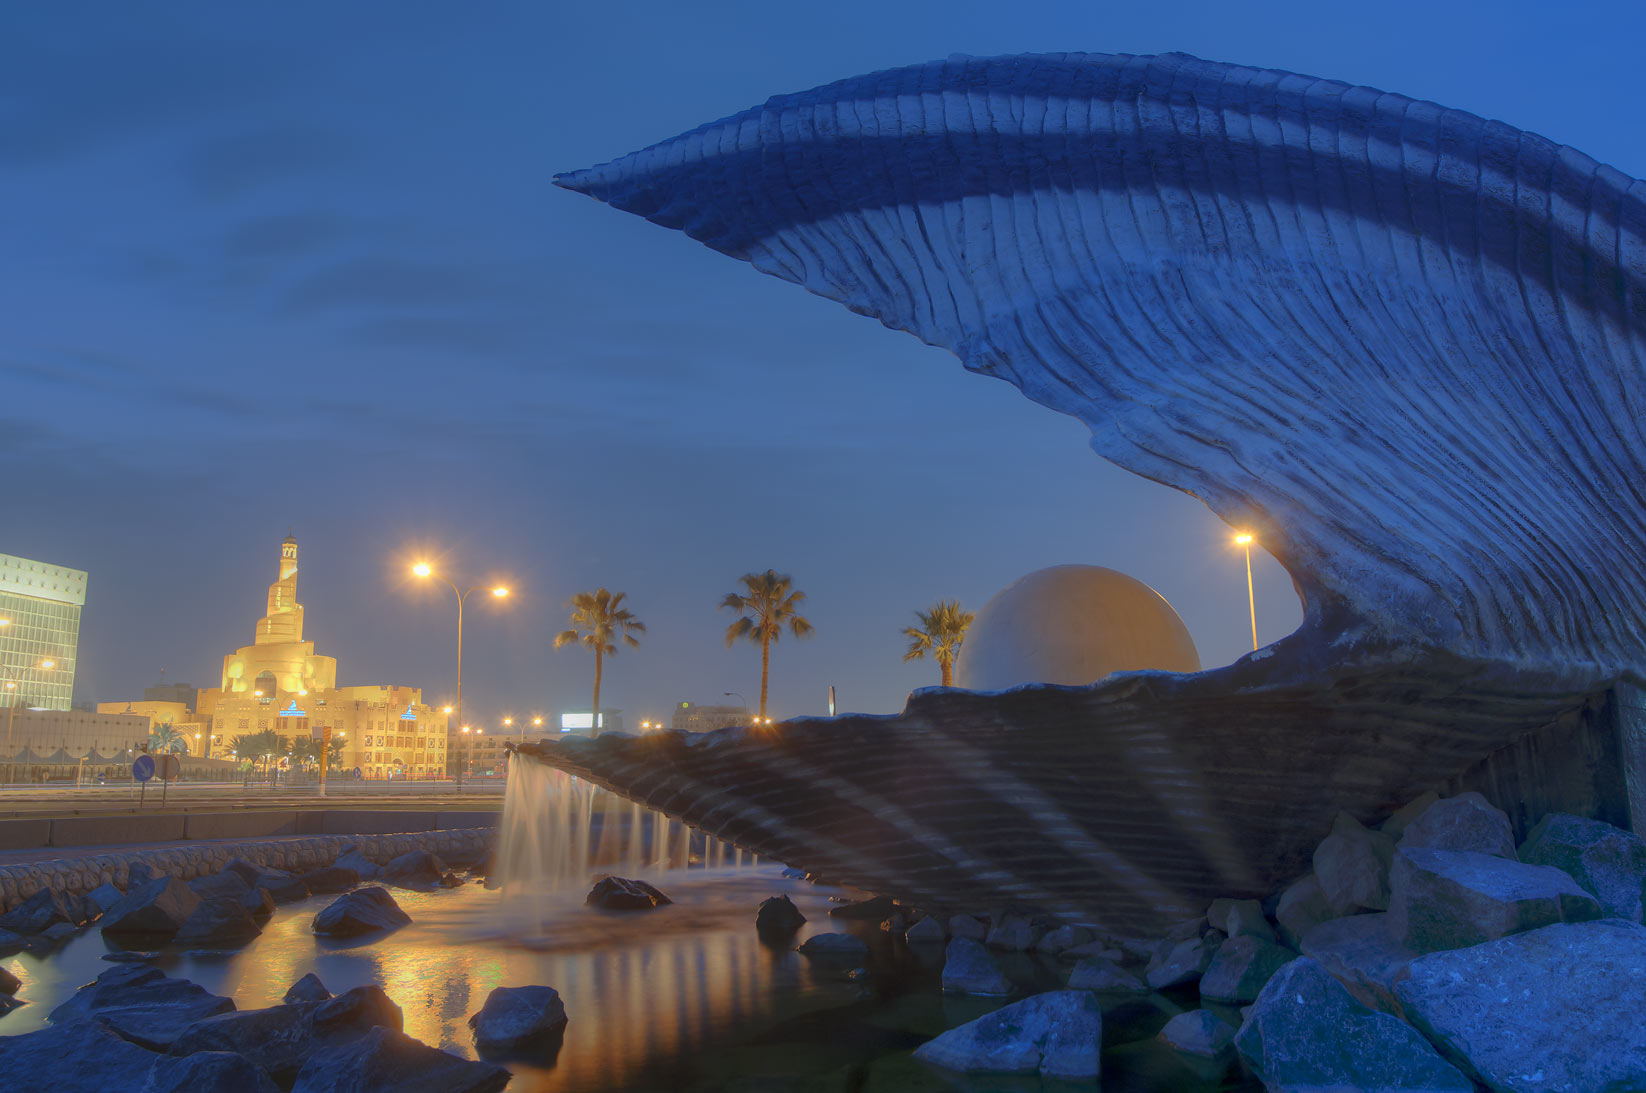 Oyster and Pearl Fountain on Corniche, with spiral mosque in background. Doha, Qatar